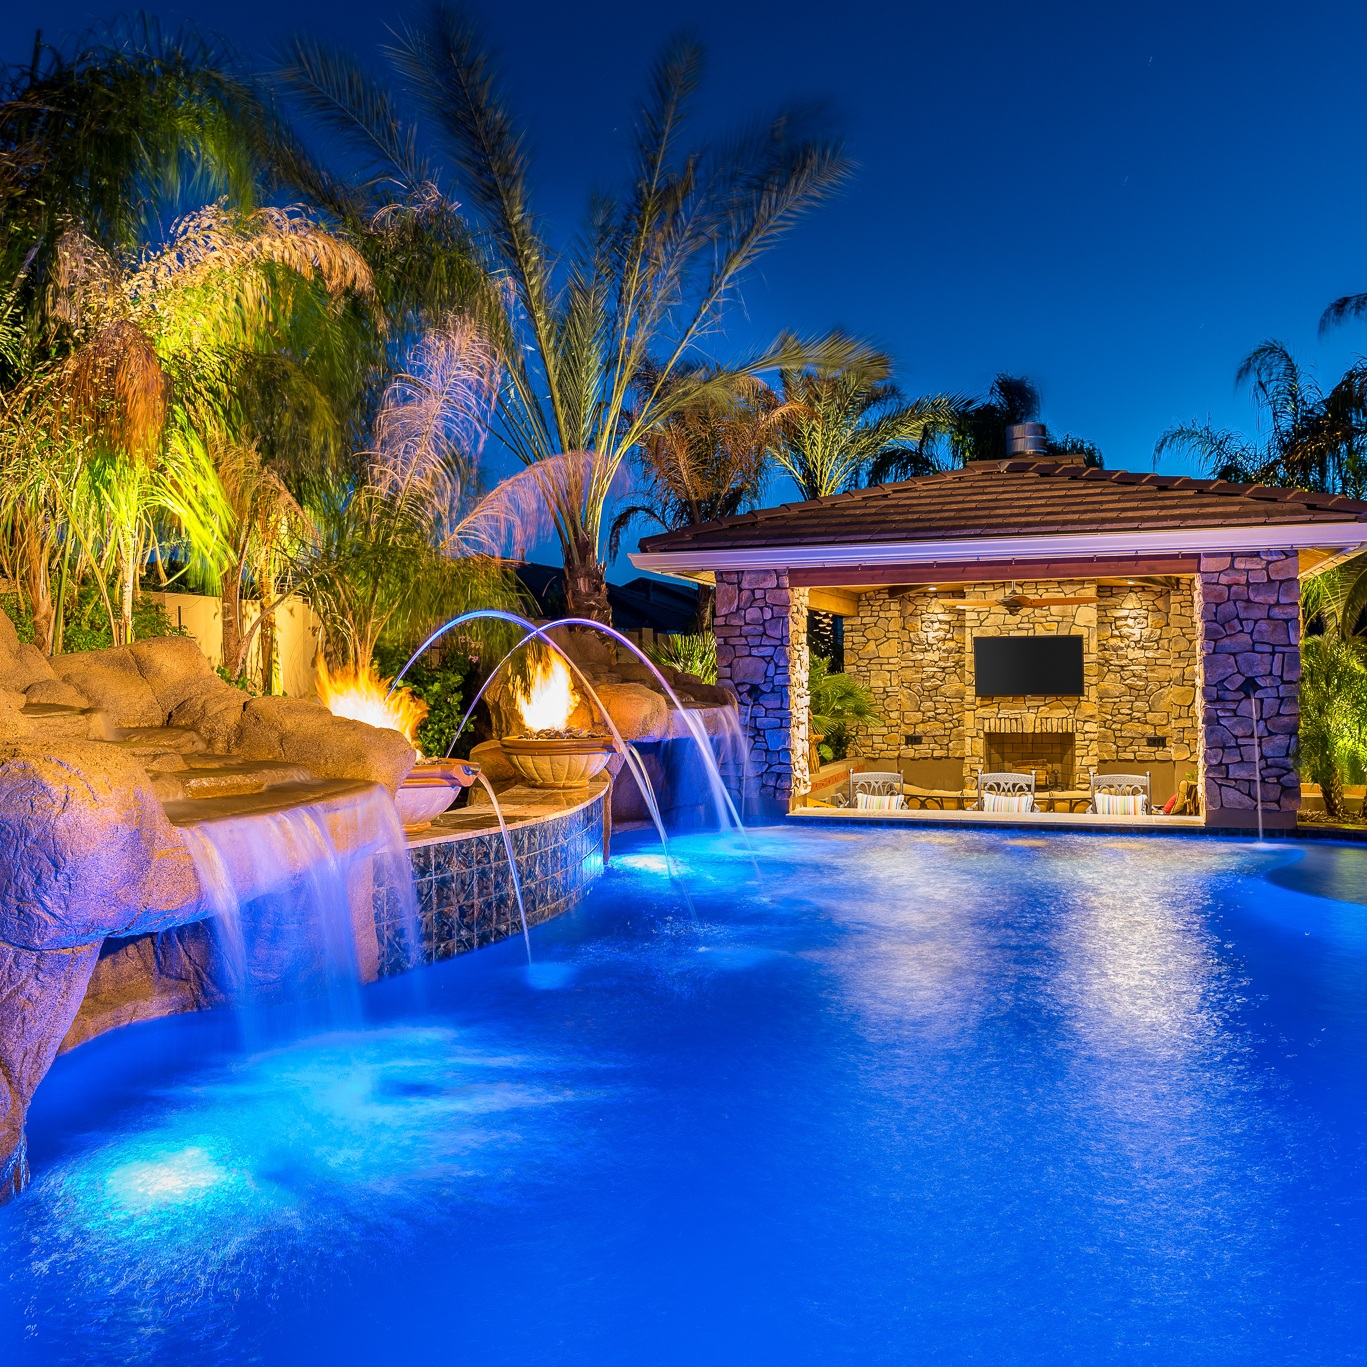 Swimming Pool Waterfall Swim up Bar, Fire Features and Laminars.jpg